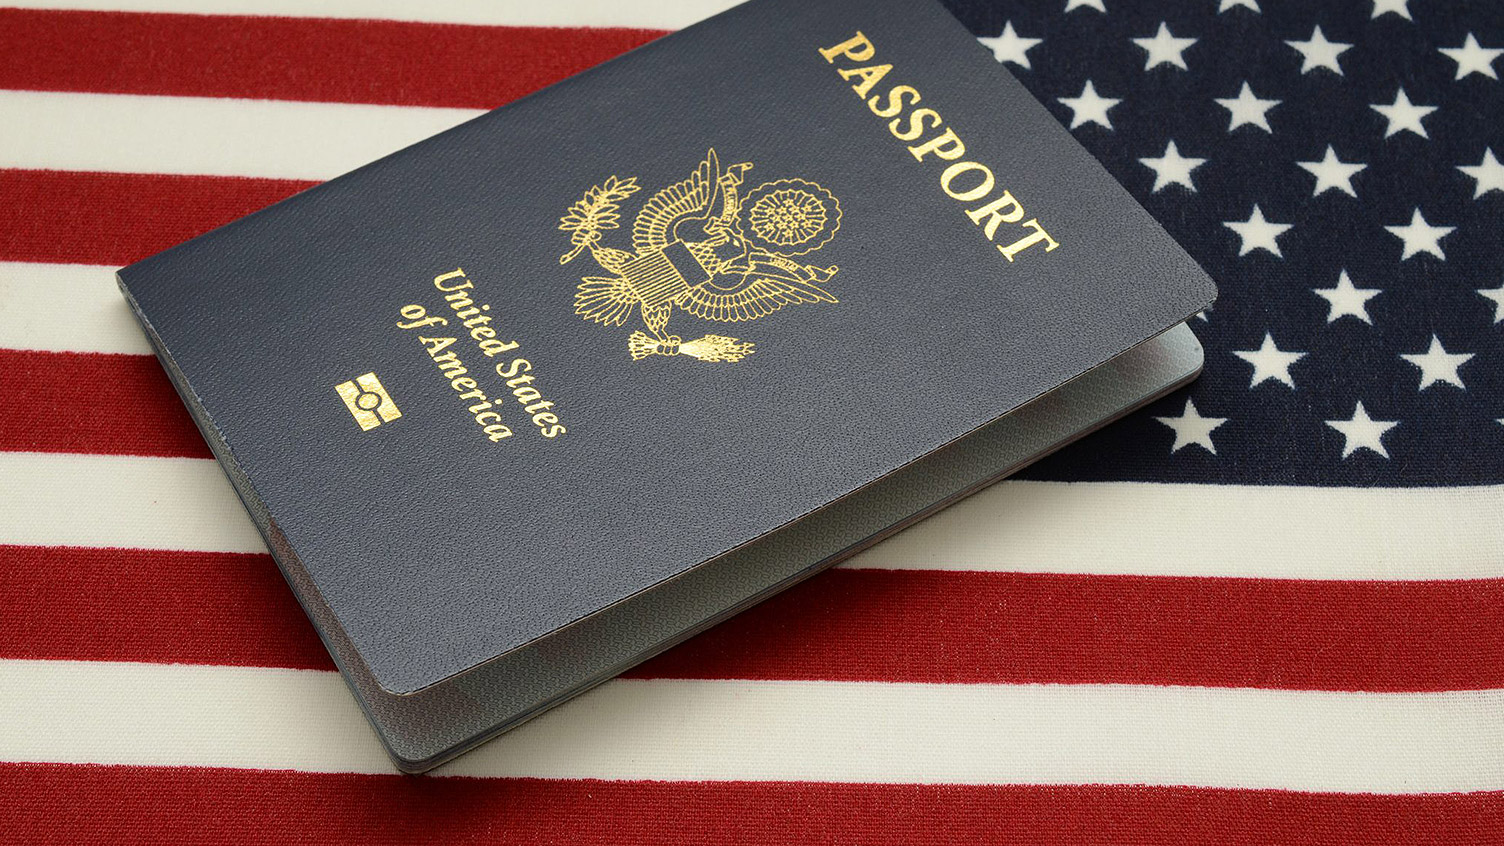 Family visa immigration lawyer in Harrsonburg